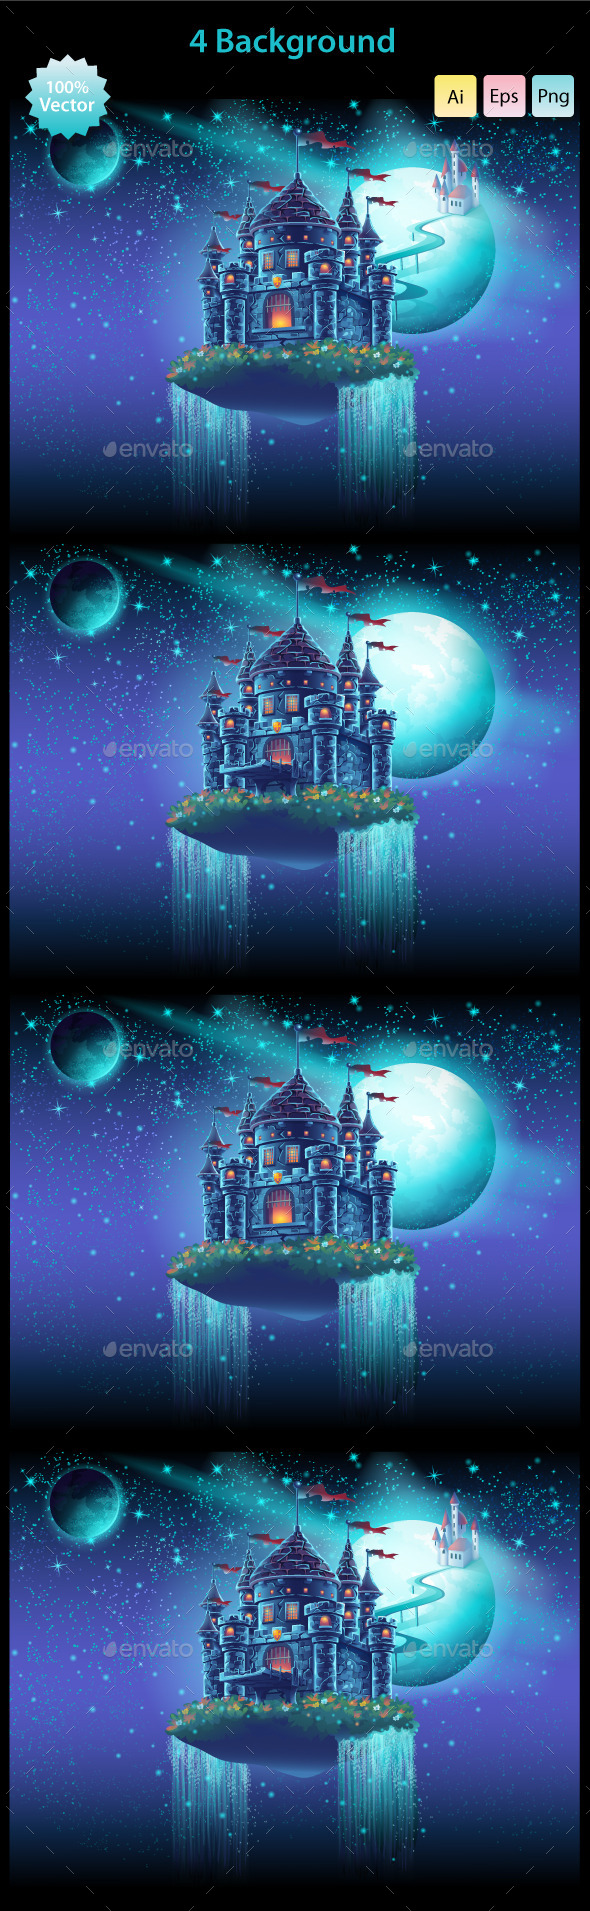 Space Castle with a Waterfall on the Background - Backgrounds Game Assets